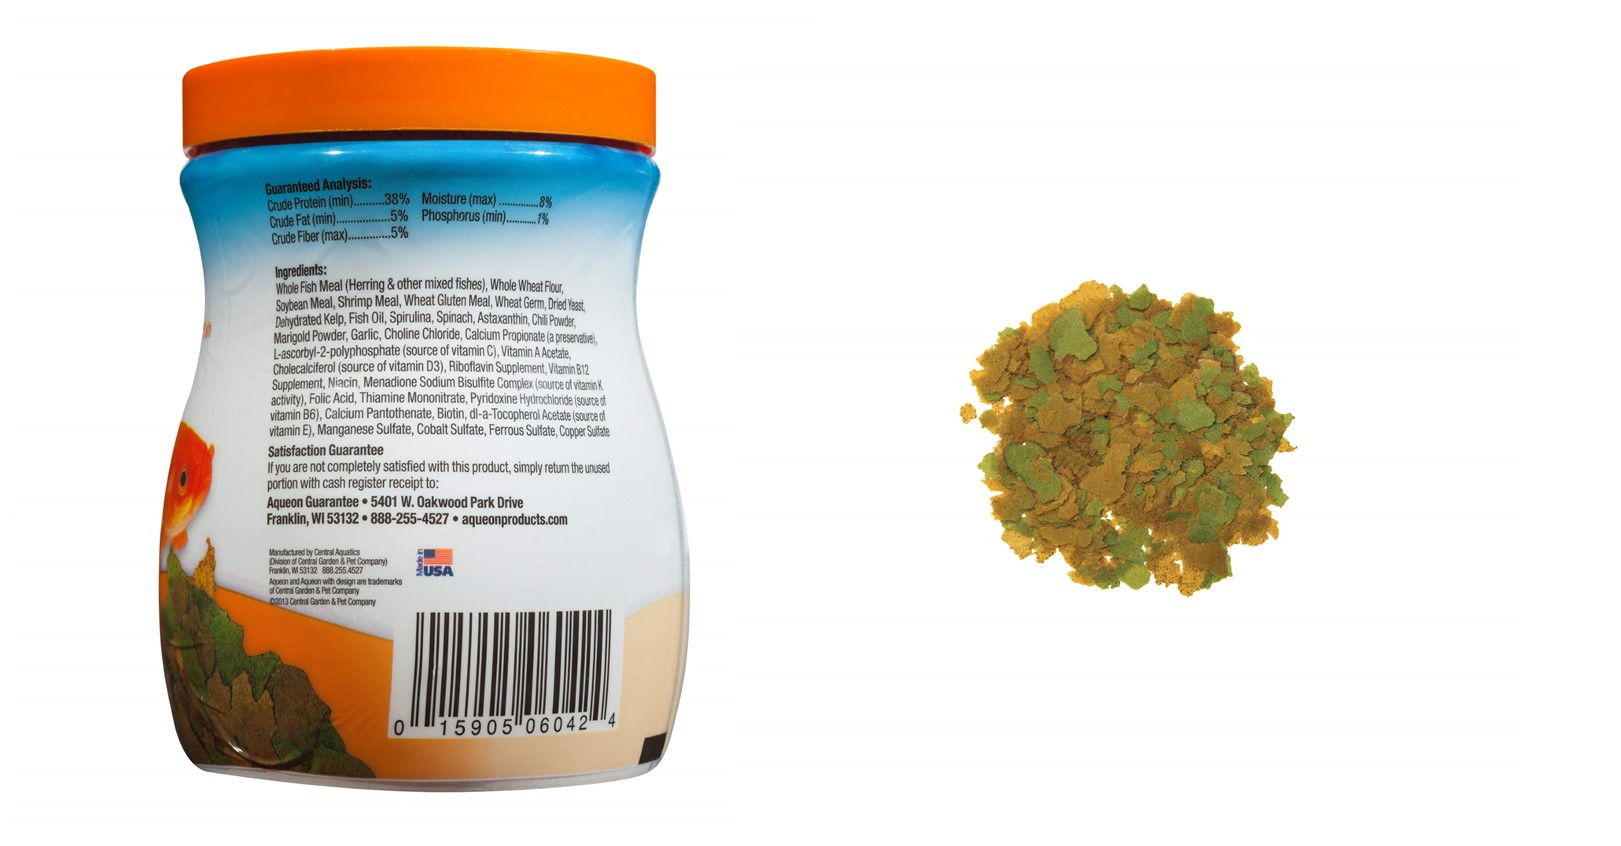 aqueon-goldfish-flakes-and-other-pond-fish-details-2.29-oz.-fp001039.jpg